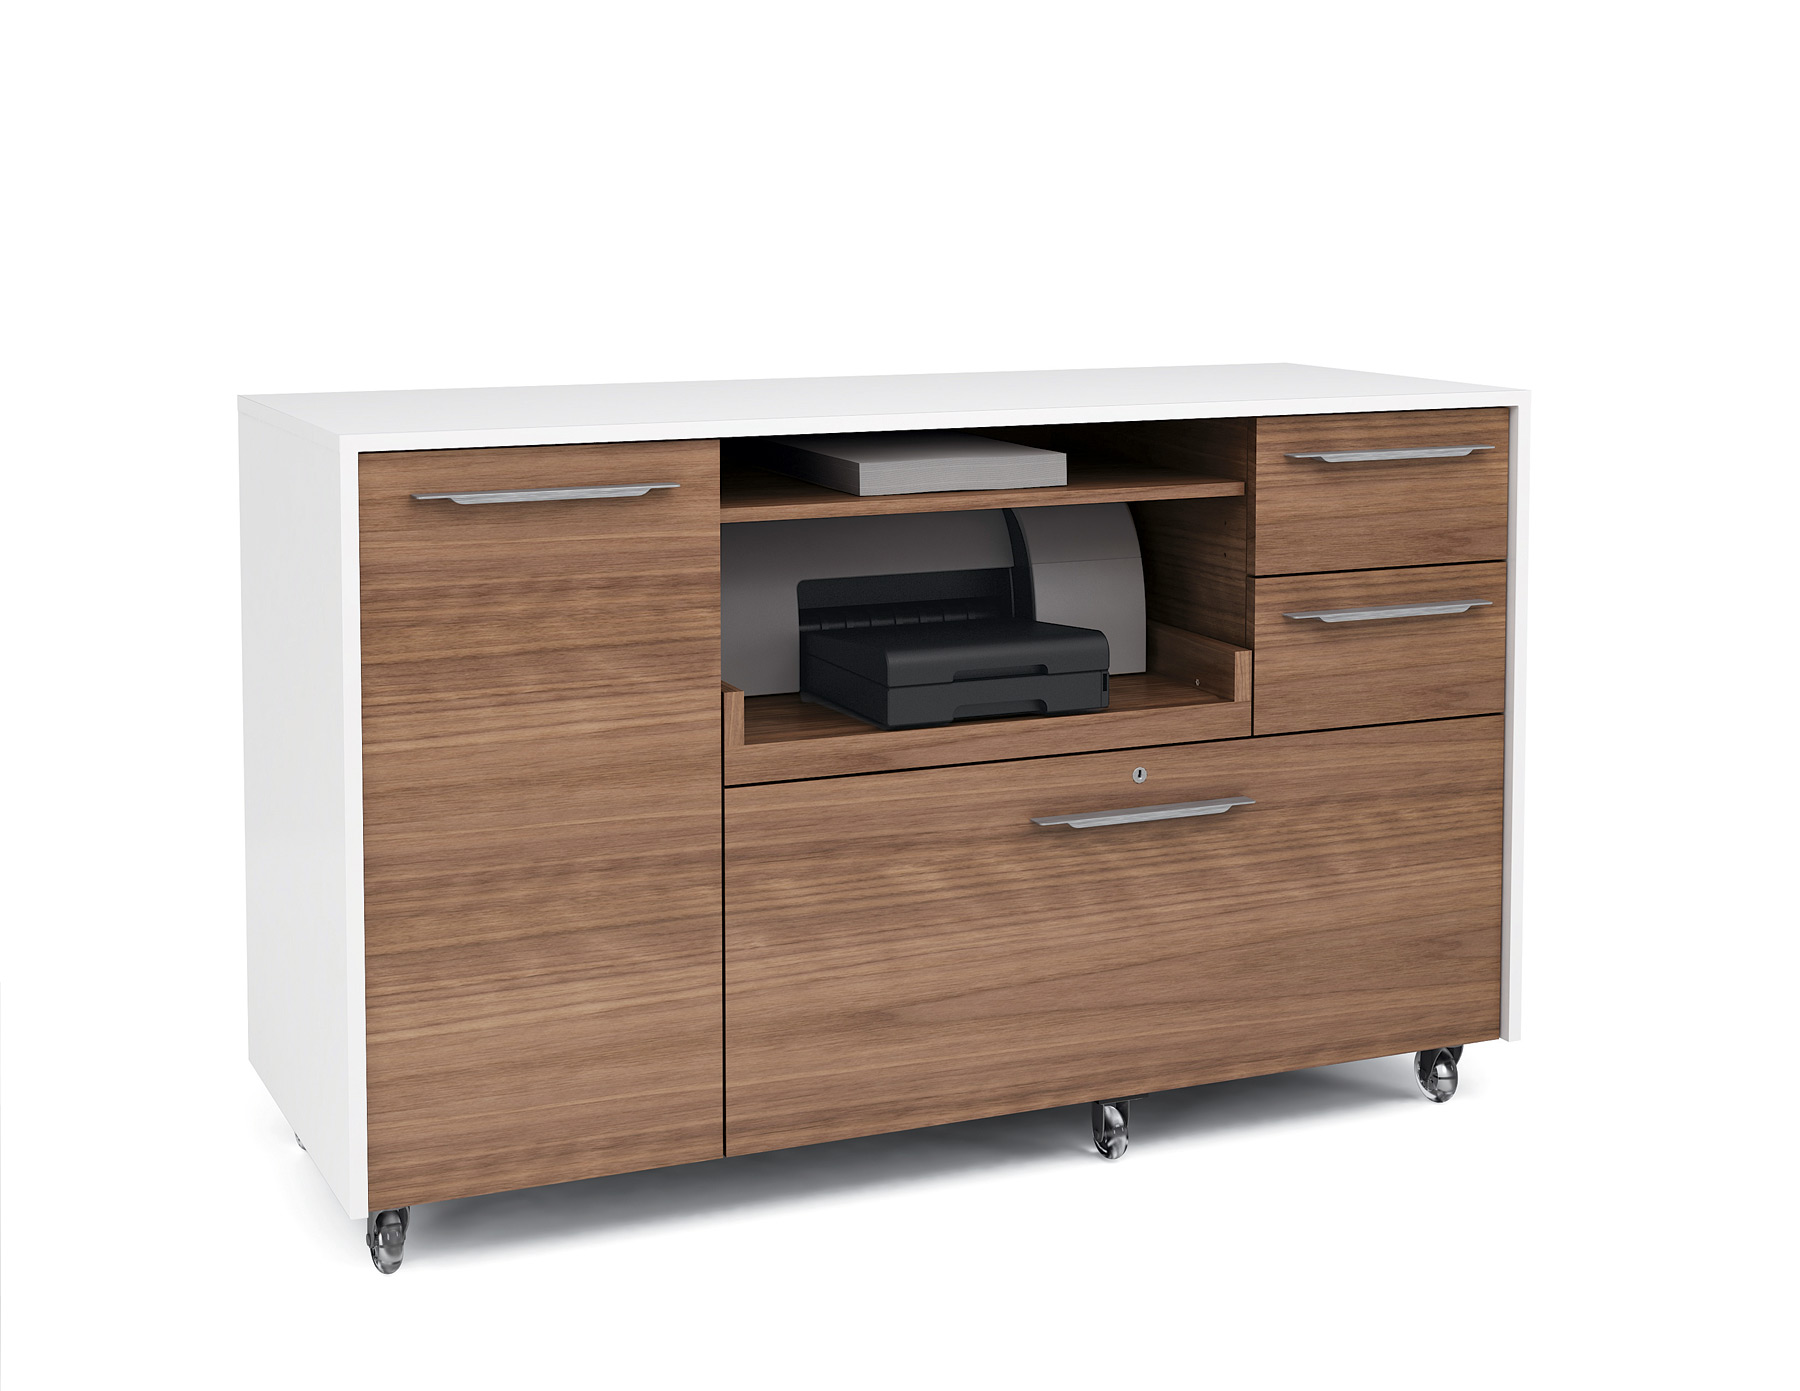 Modern side tables and accent tables jpg - Format Mobile Credenza 6320 Hip